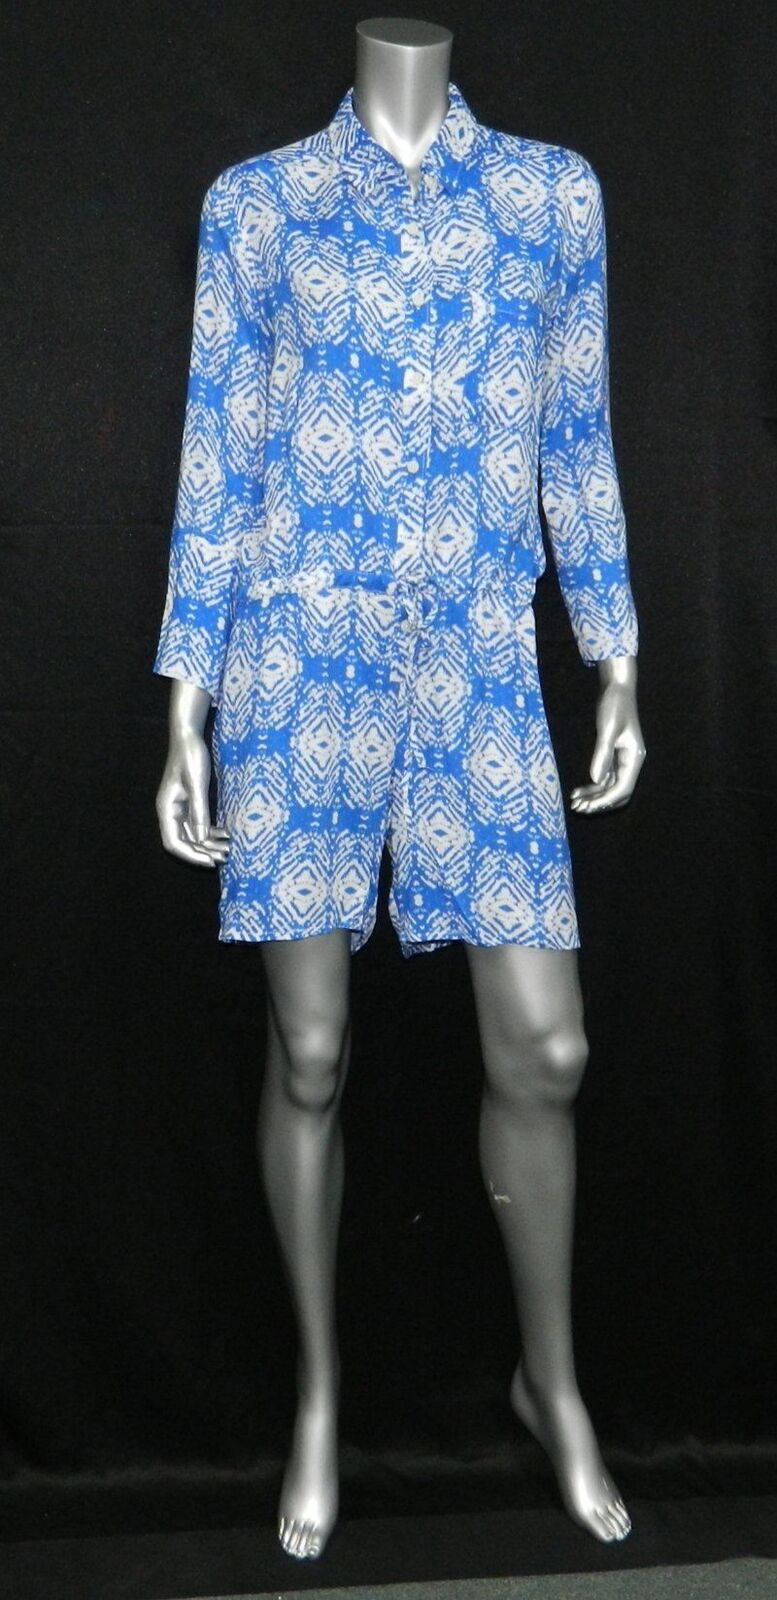 FELICITE' NEW bluee Print 3 4 Sleeve Button Front Tie Waist Shorts Romper sz 2